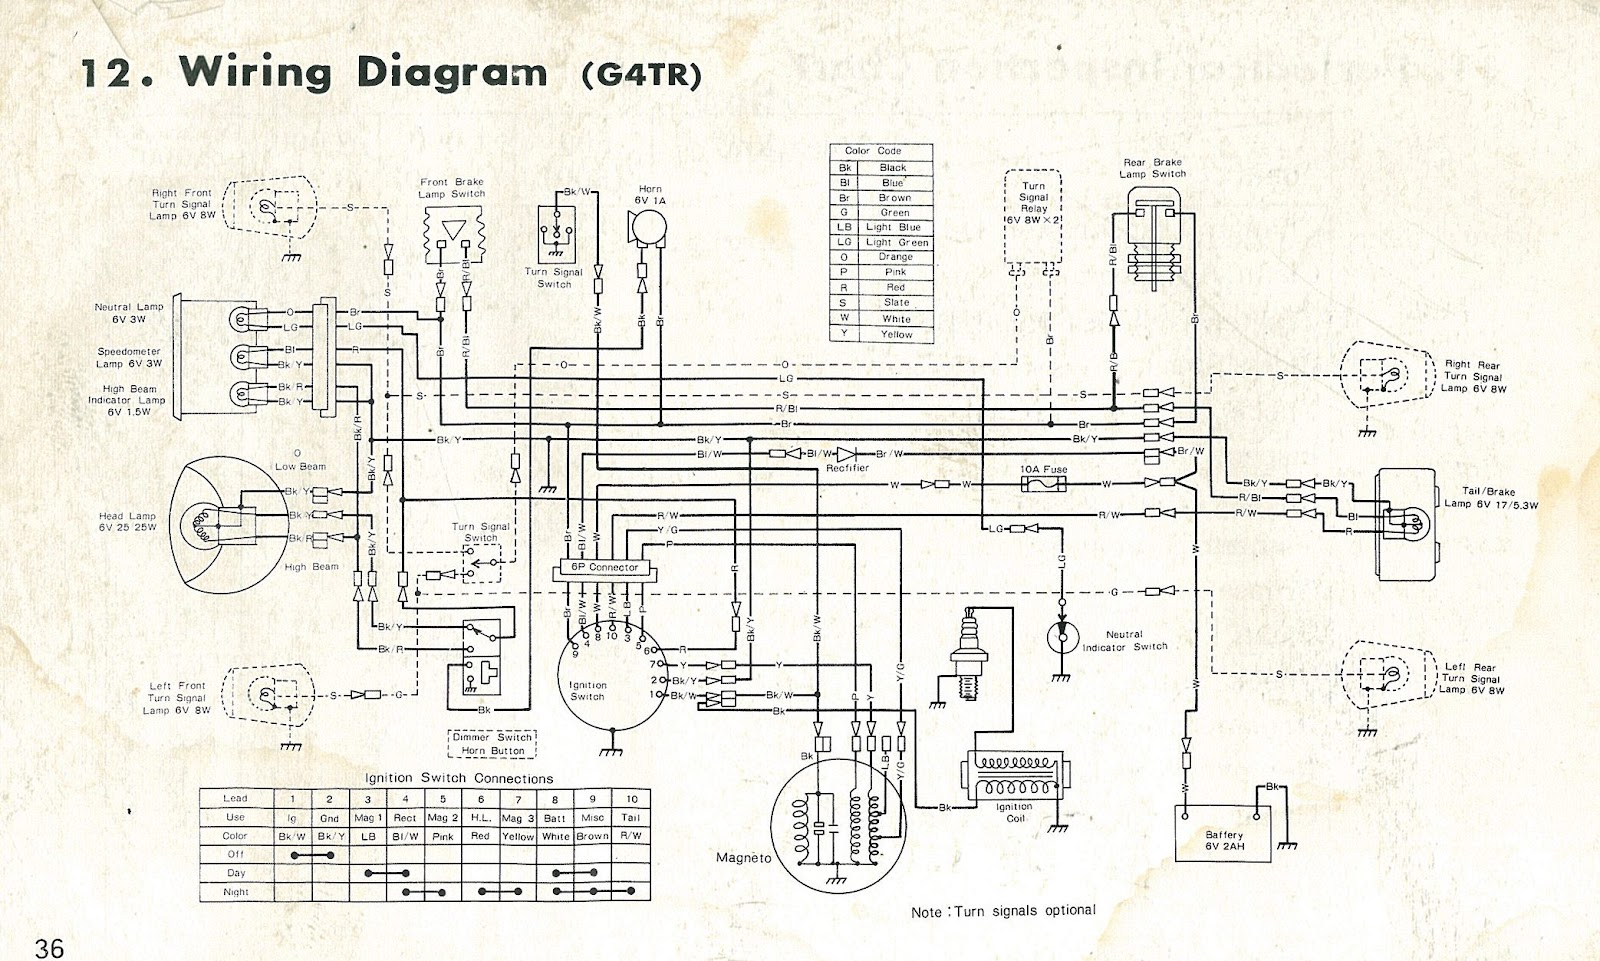 medium resolution of g4 wiring diagram wiring schematic diagram 8 insuranceblog asiarestoring a 1972 kawasaki g4 tr b motorcycle